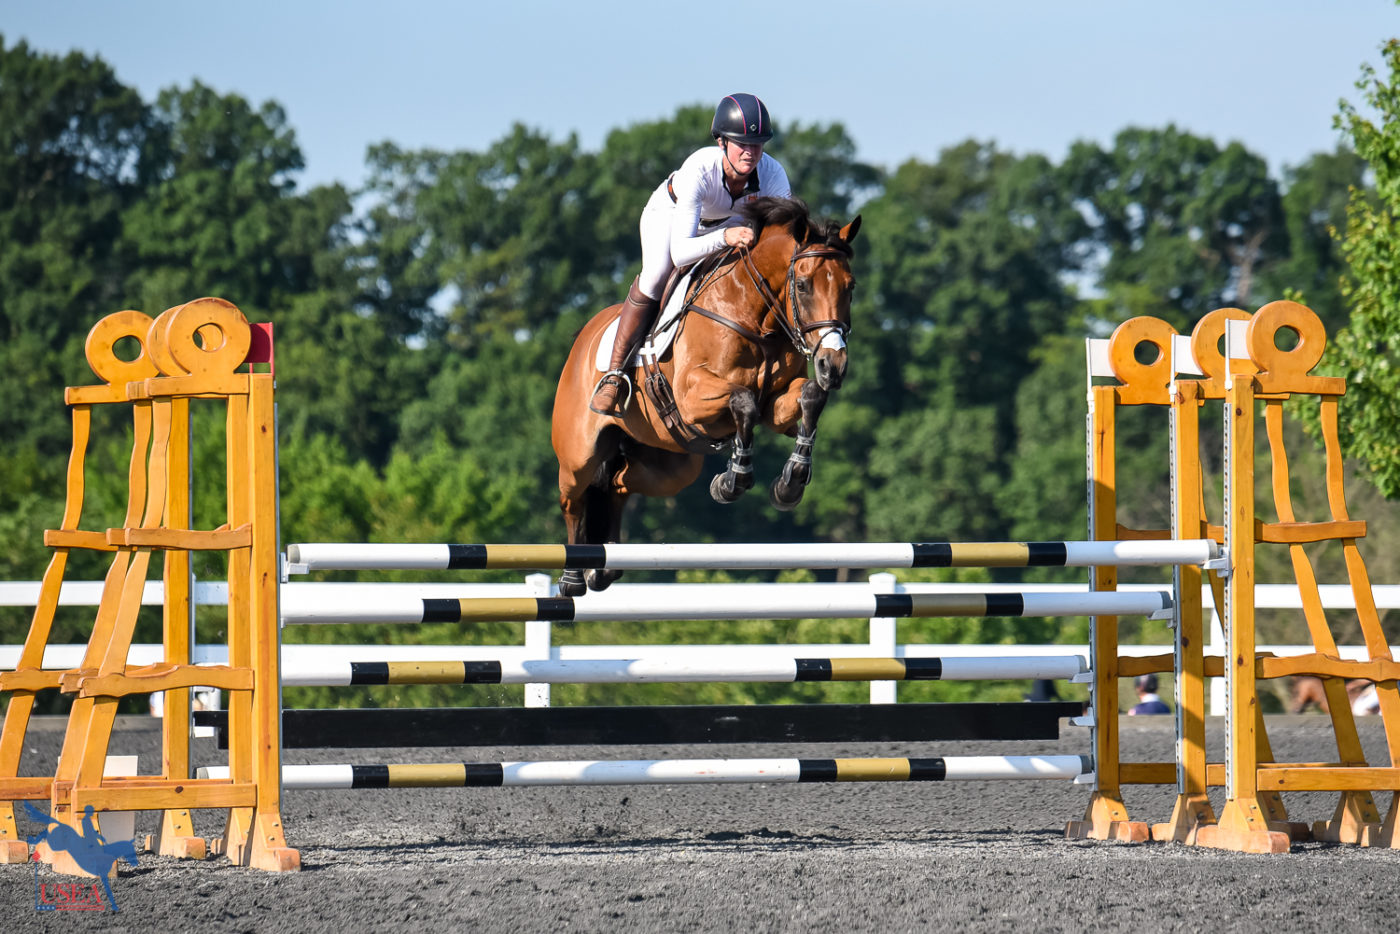 8th - Lauren Kieffer and Vermiculus - 34.1